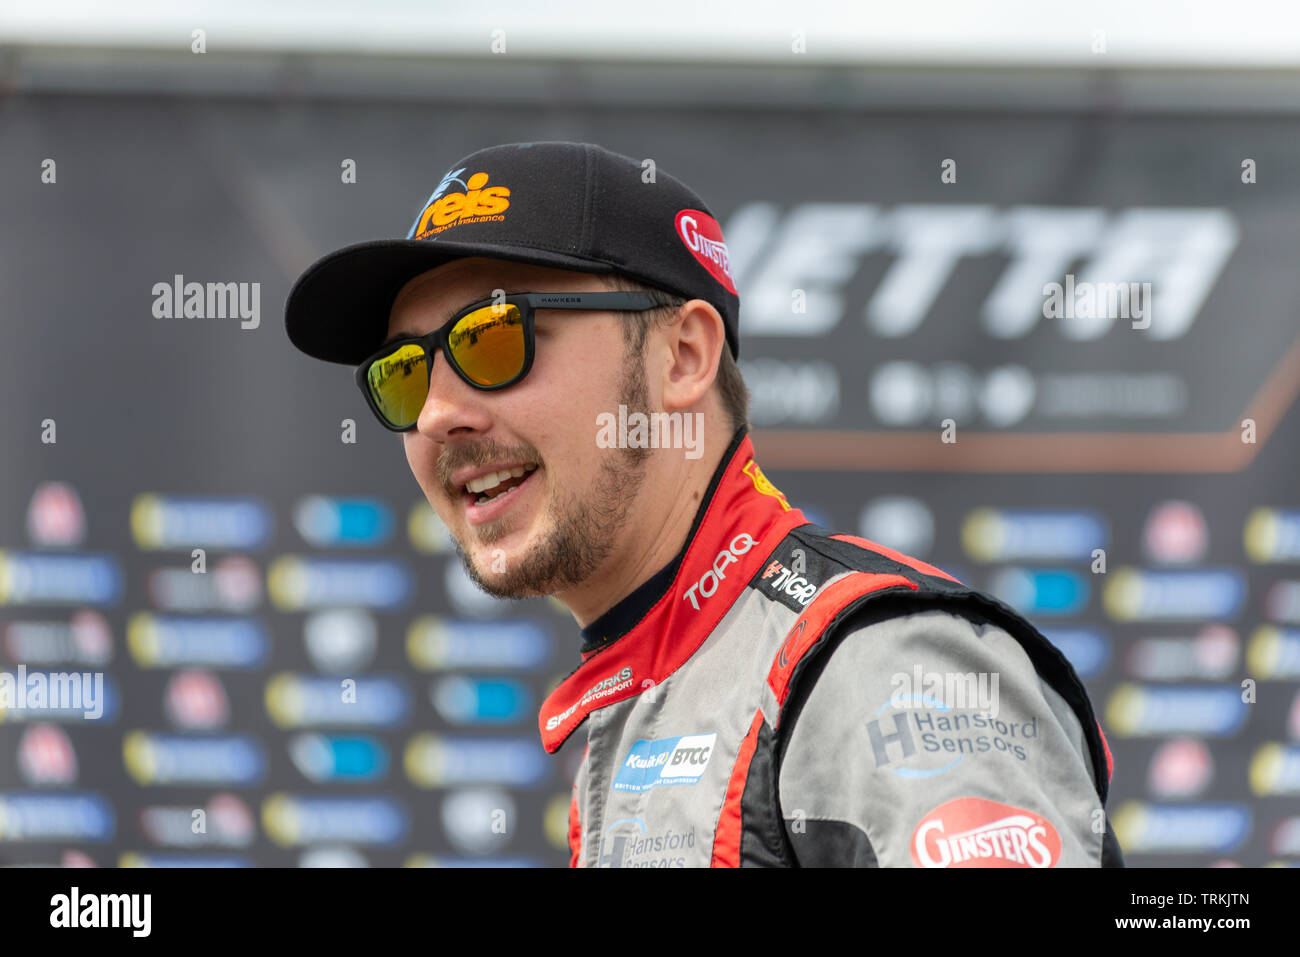 Tom Ingram BTCC Racing Driver at Thruxton During the Kwikfit British Touring Car Championship Weekend of May 18th and 19th 2019 - Stock Image